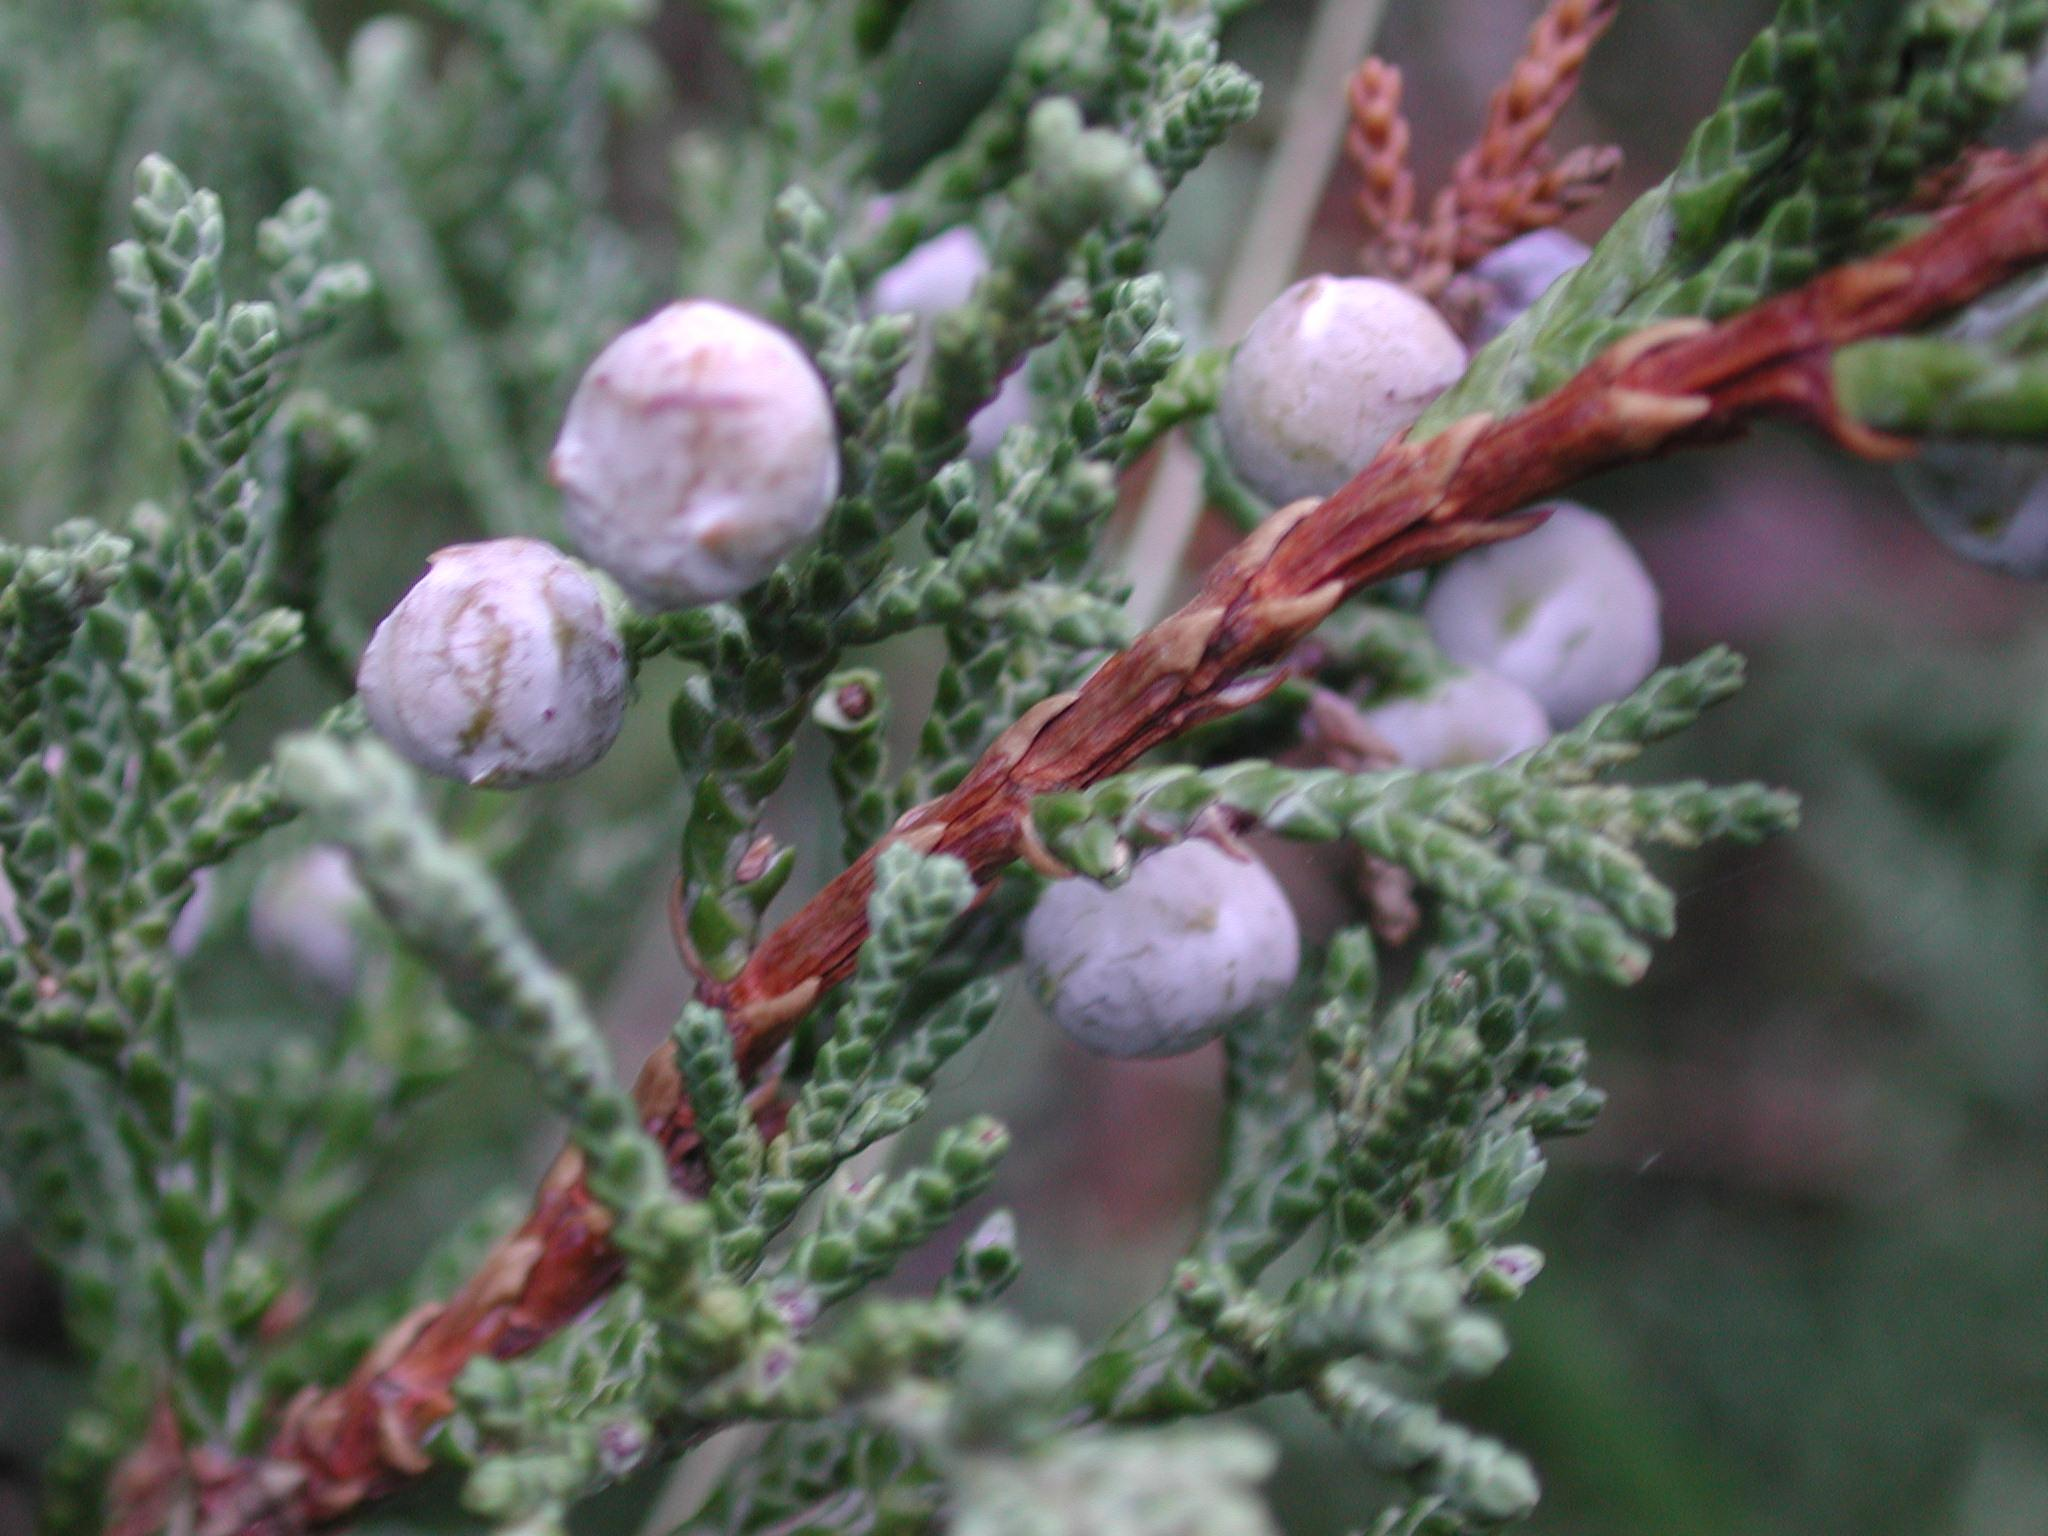 juniper berries.JPG (2048×1536)